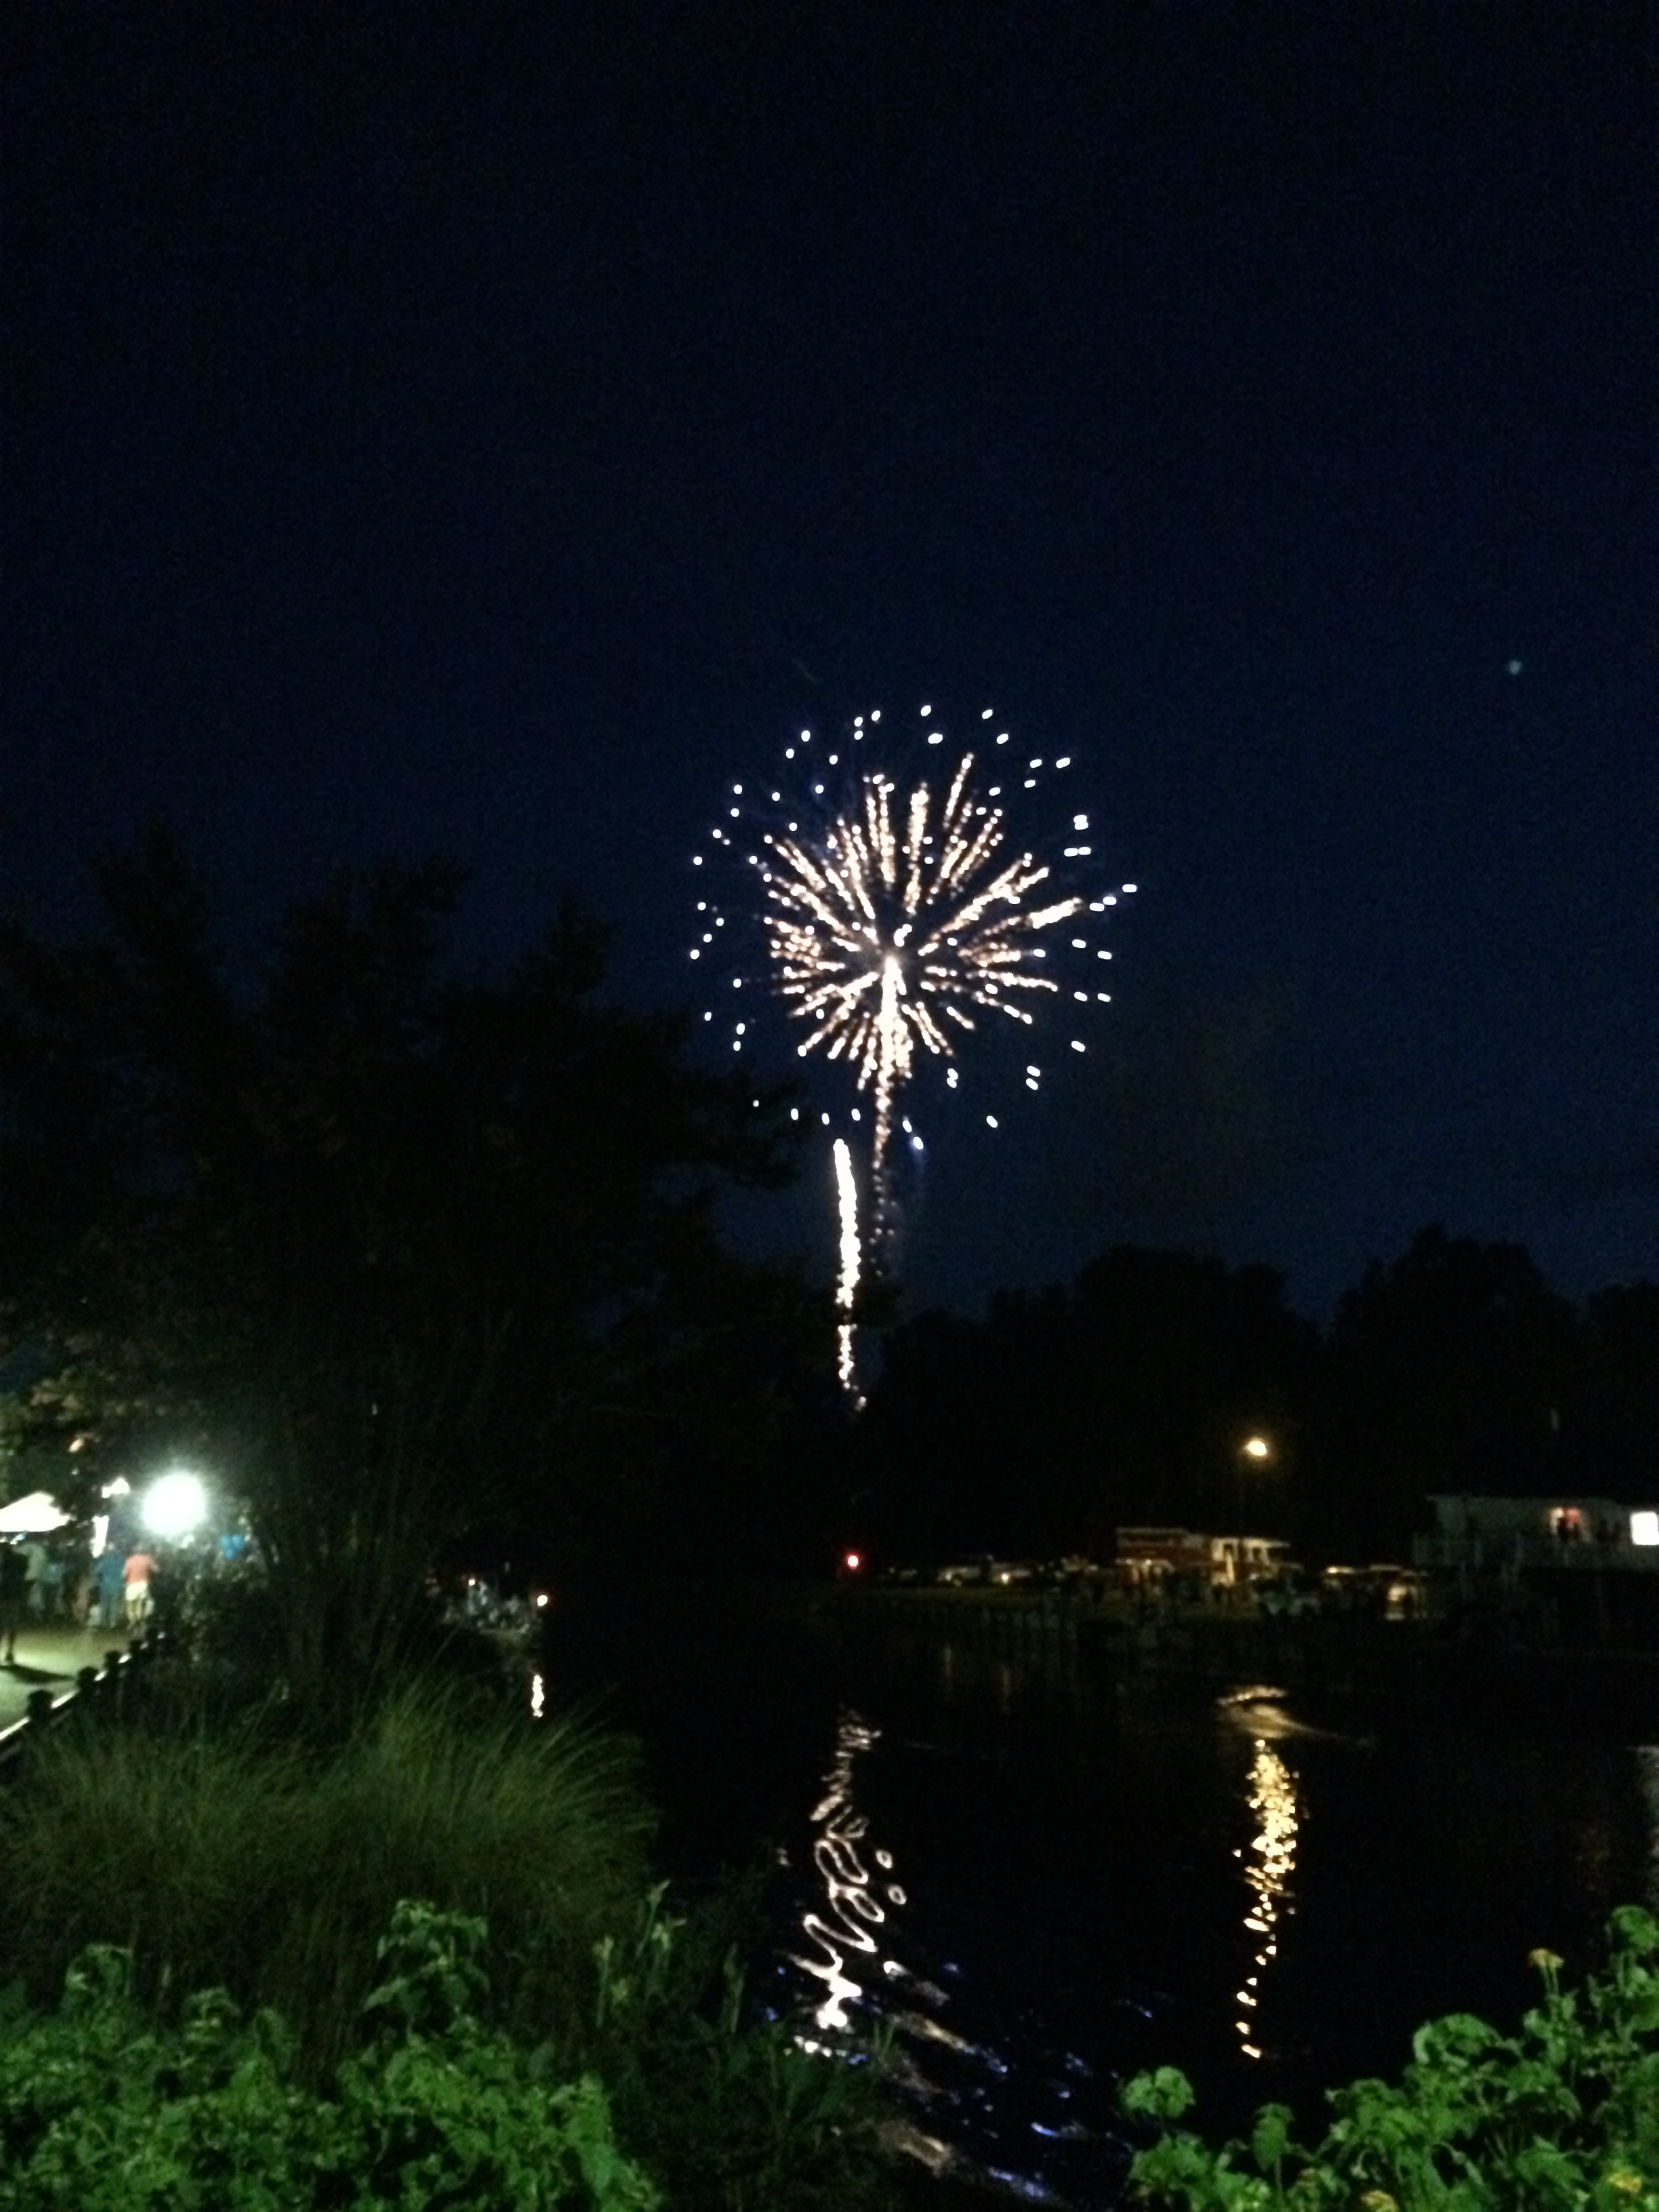 An image of the fireworks show we enjoyed.